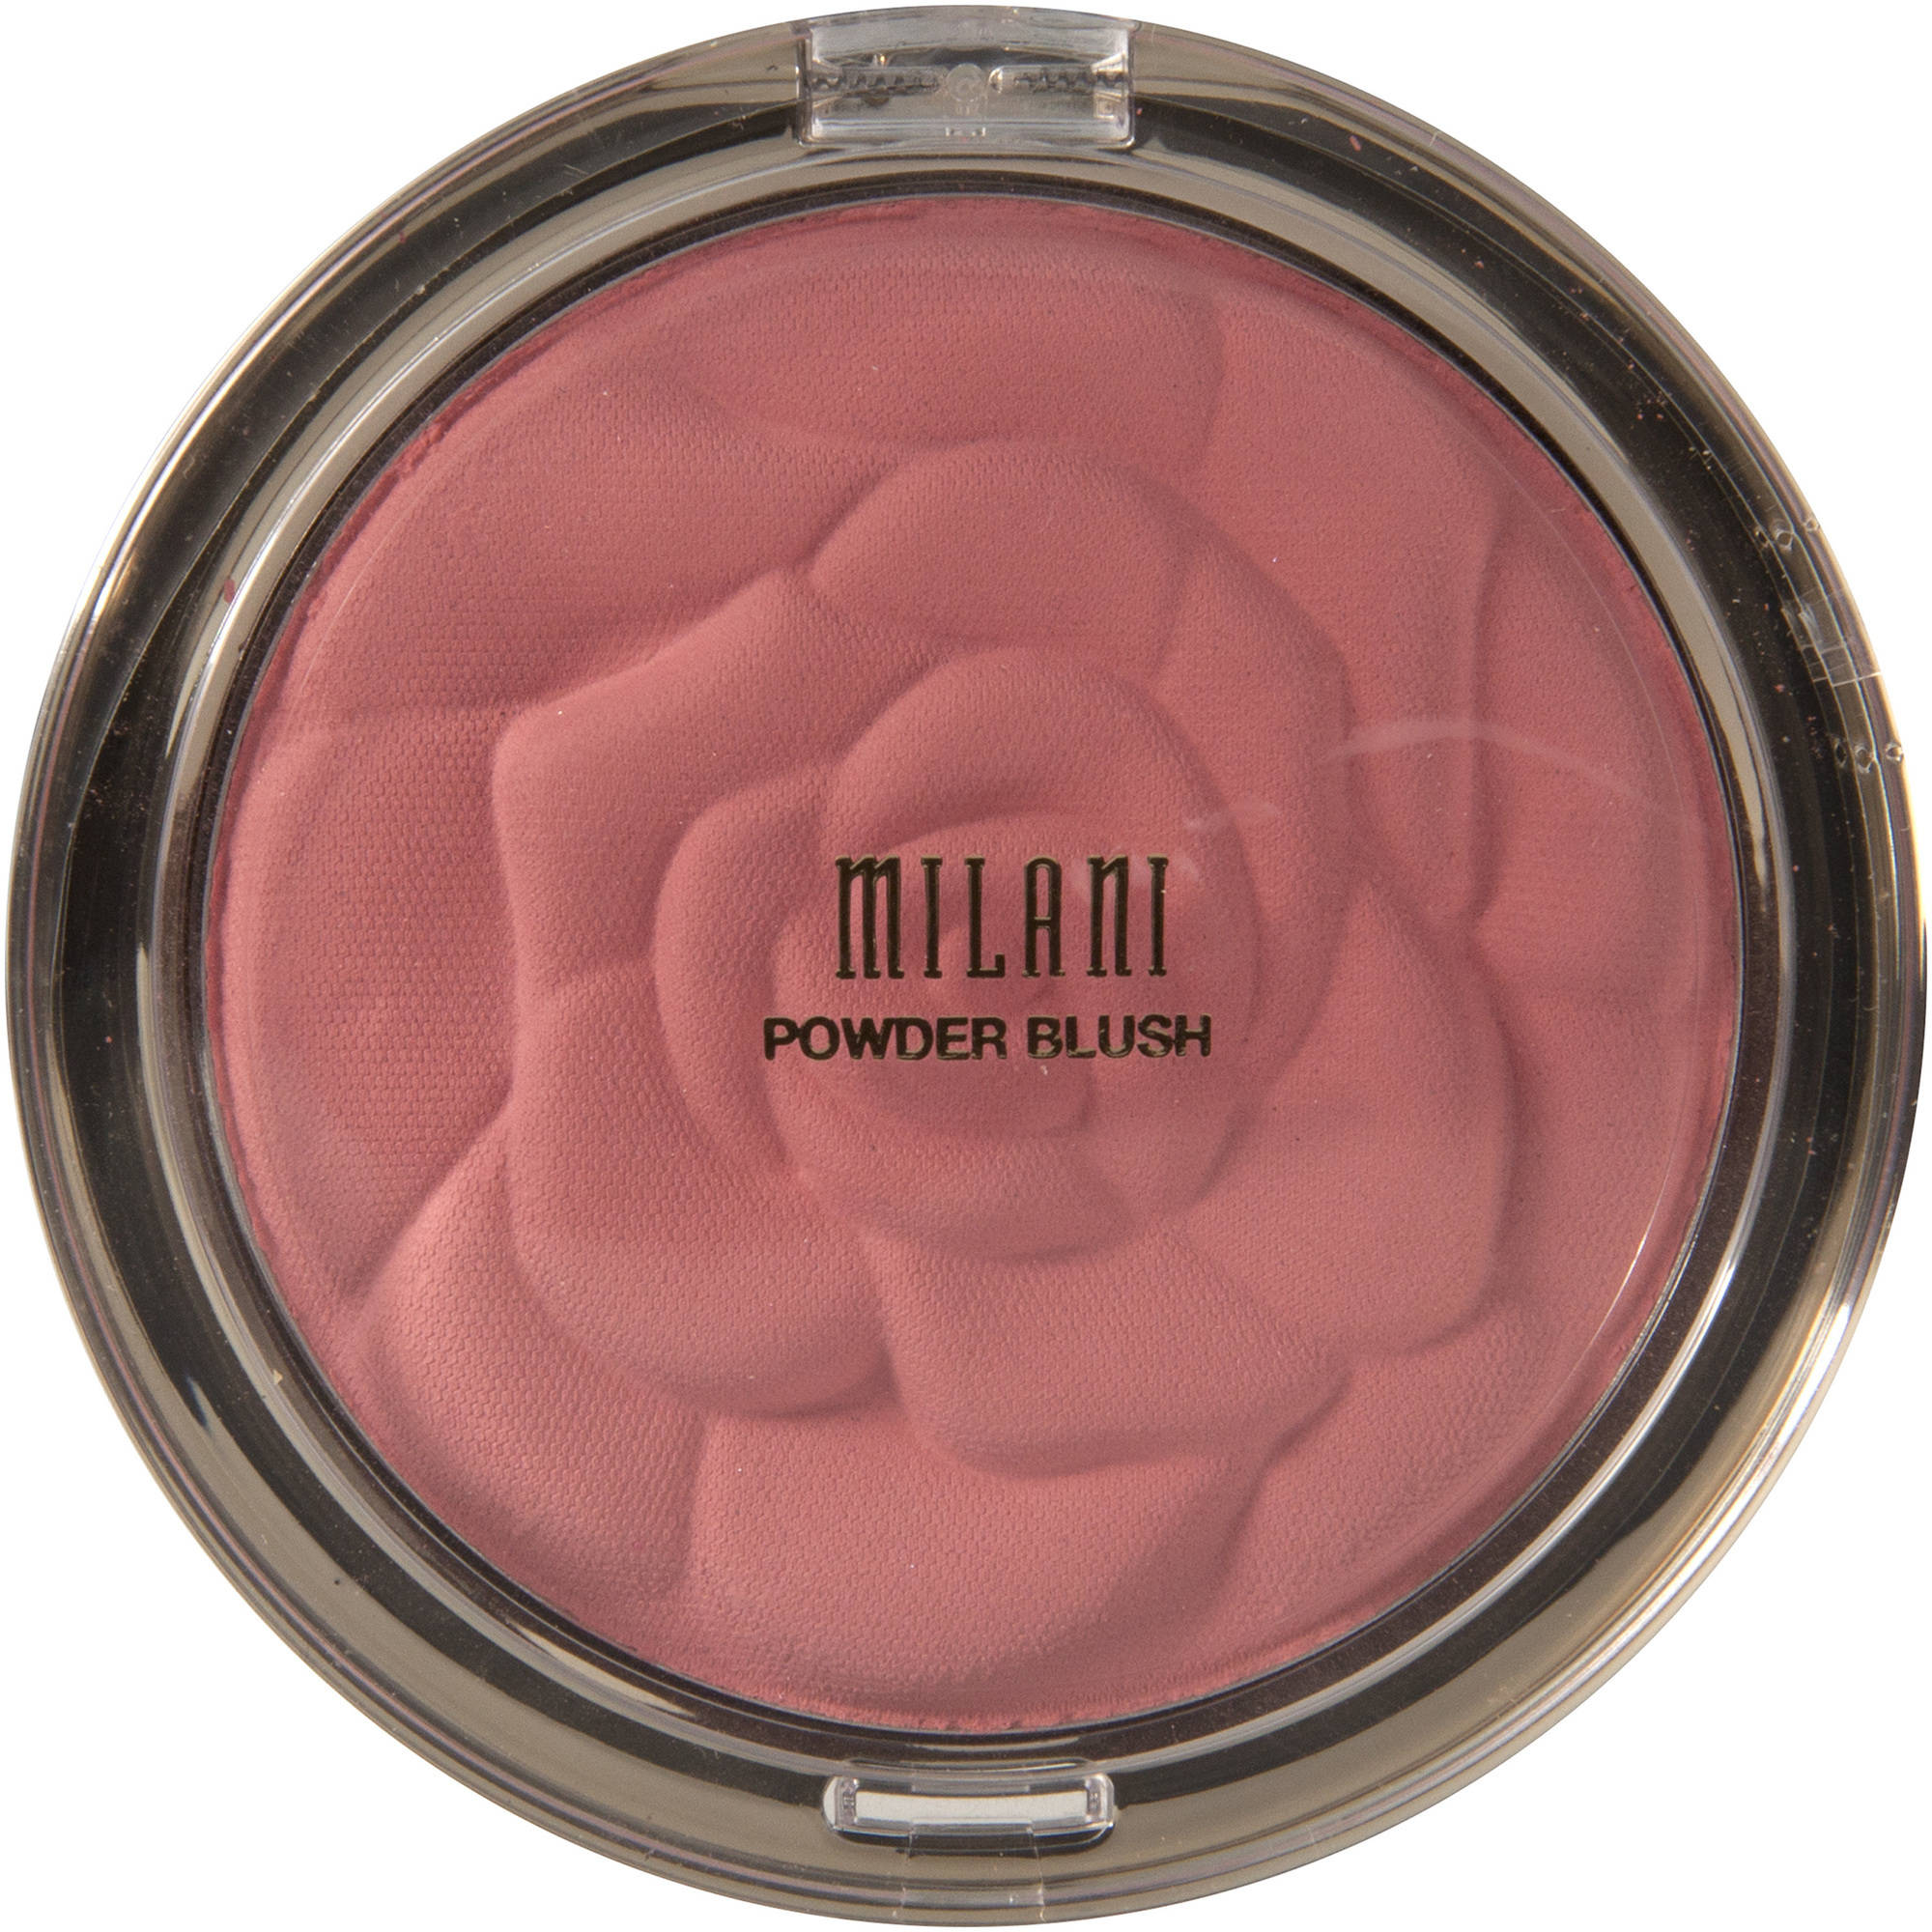 Milani Powder Blush, 08 Tea Rose, .6 oz